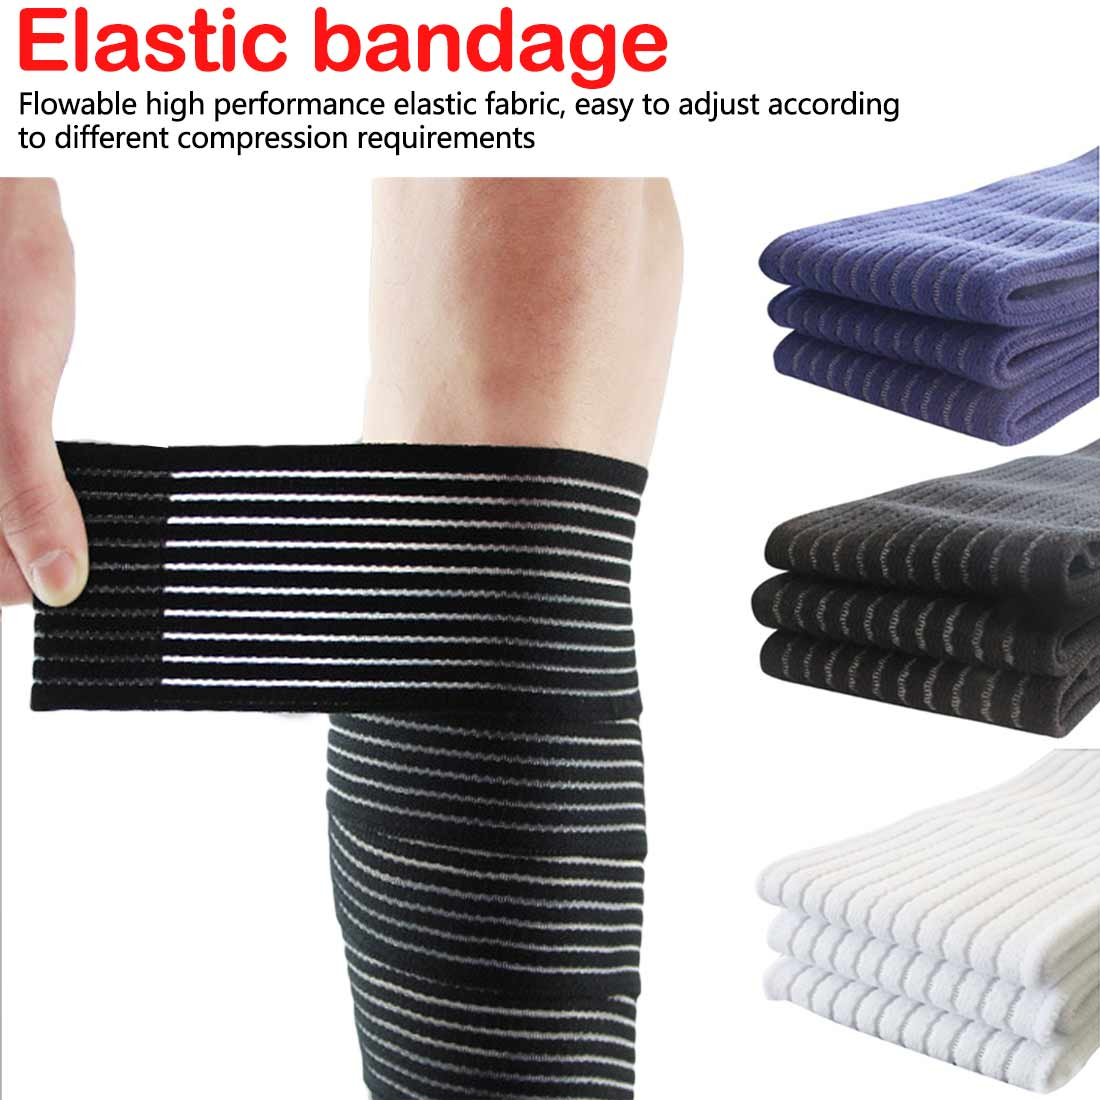 1 Pc Elastic Bandage Compression Knee Support Sports Strap Knee Protector Bands Ankle Leg Elbow Wrist Calf Brace Safety 90~180cm